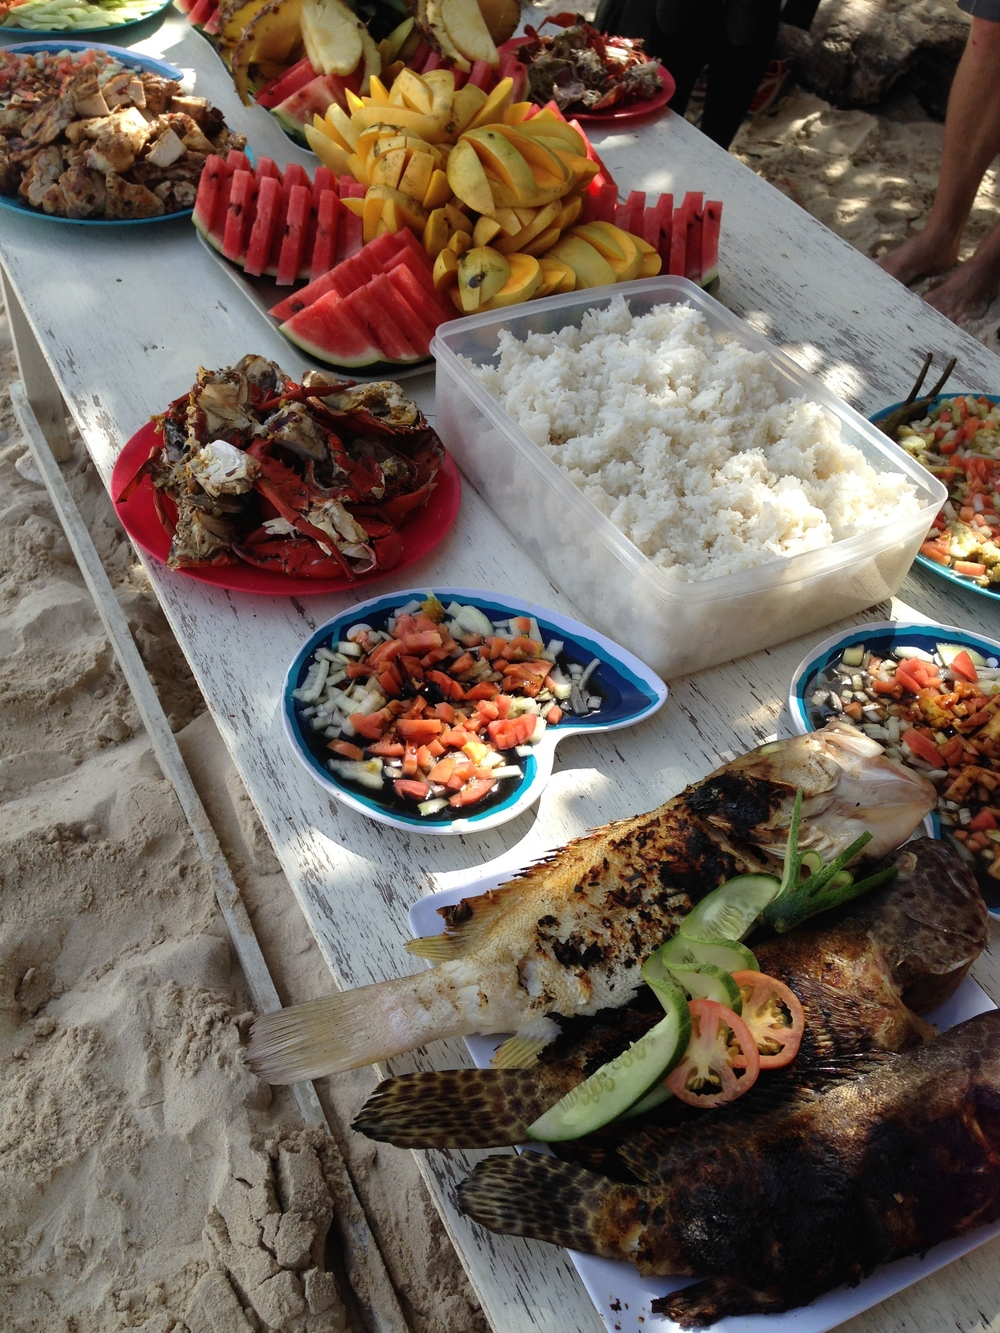 The lunch spread on our island hopping excursion